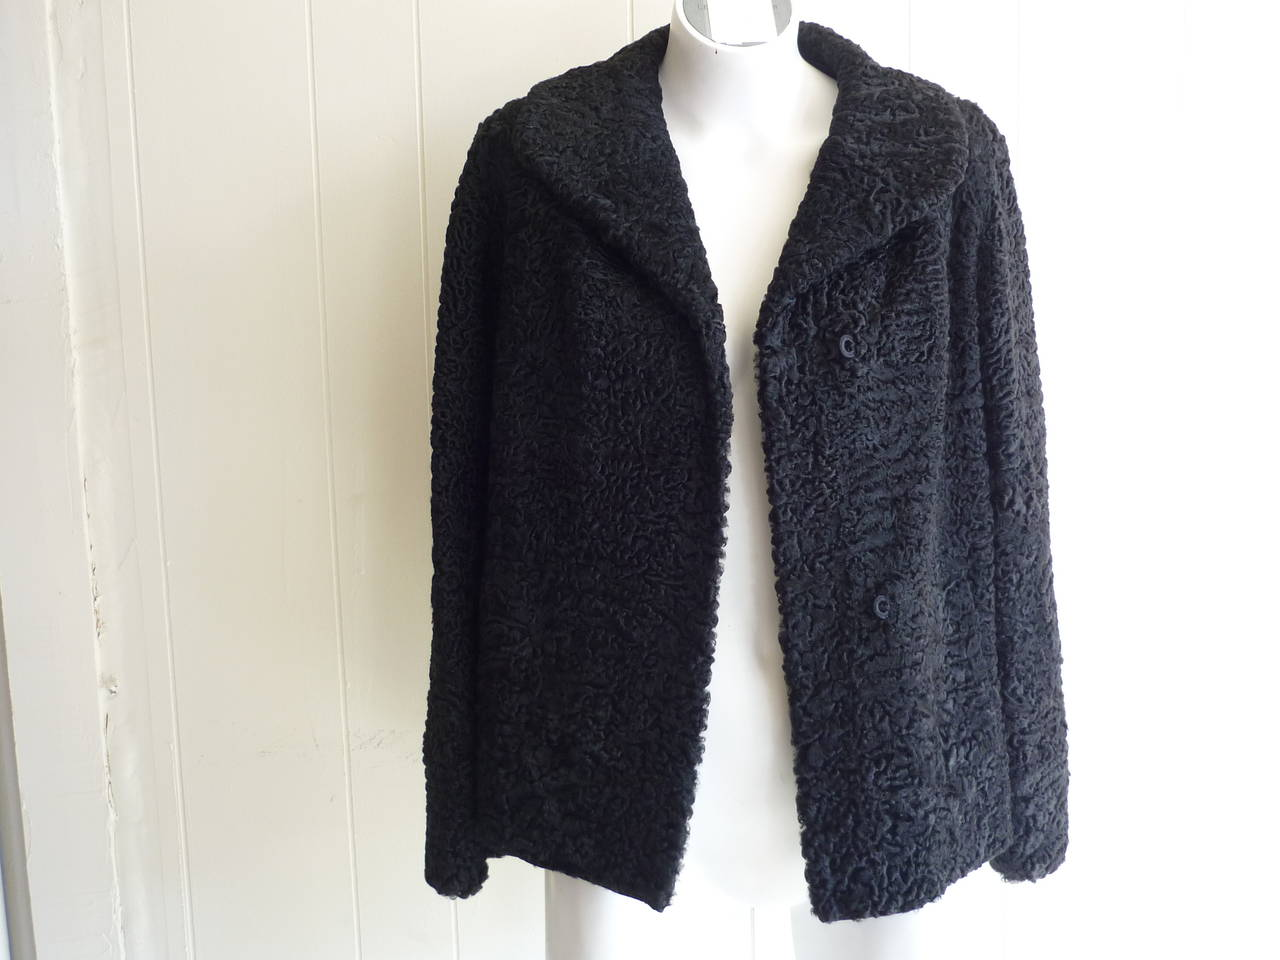 Persian Lamb also known as astrakhan, this jacket is in pristine condition with a lovely black lining with a rose design (black and white). There are two vertical slit pockets and gros grain trim on the scalopped bottom as well as the